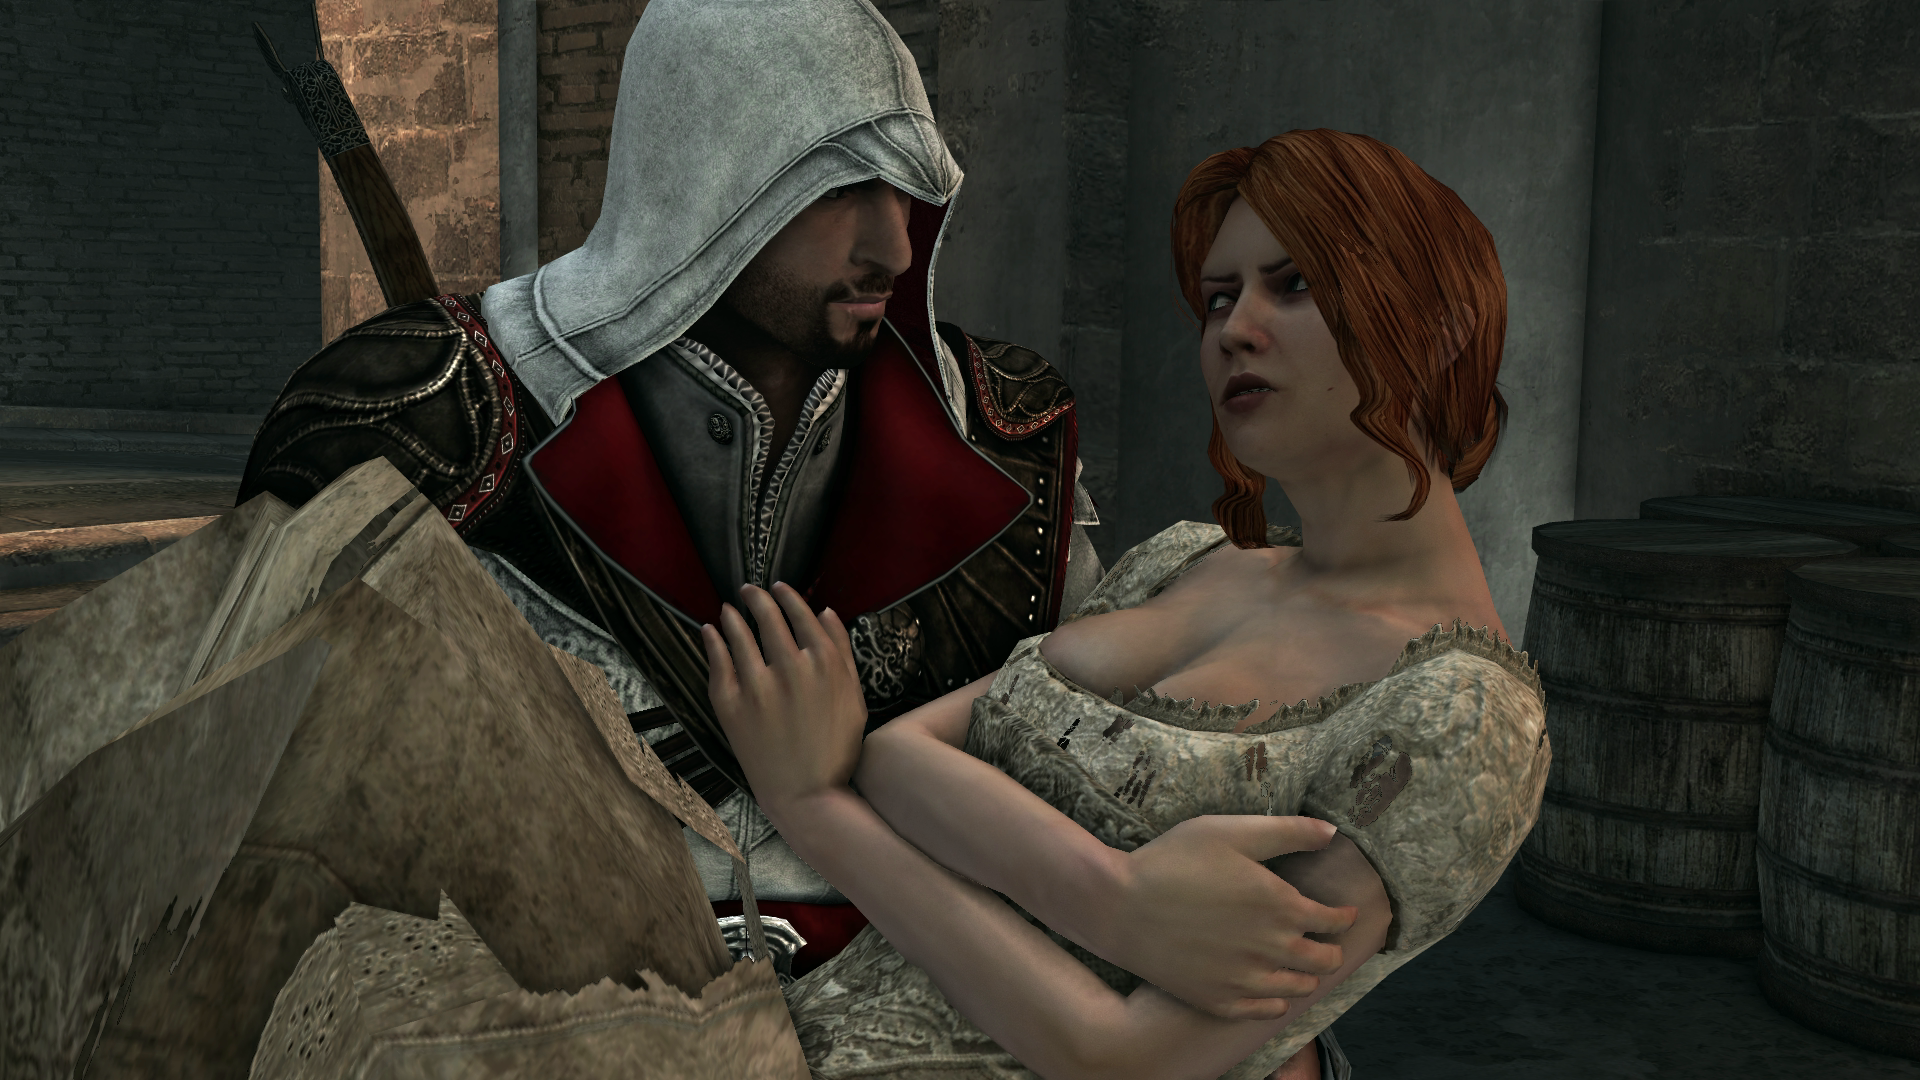 Assassin's creed brotherhood girls naked exposed gallery